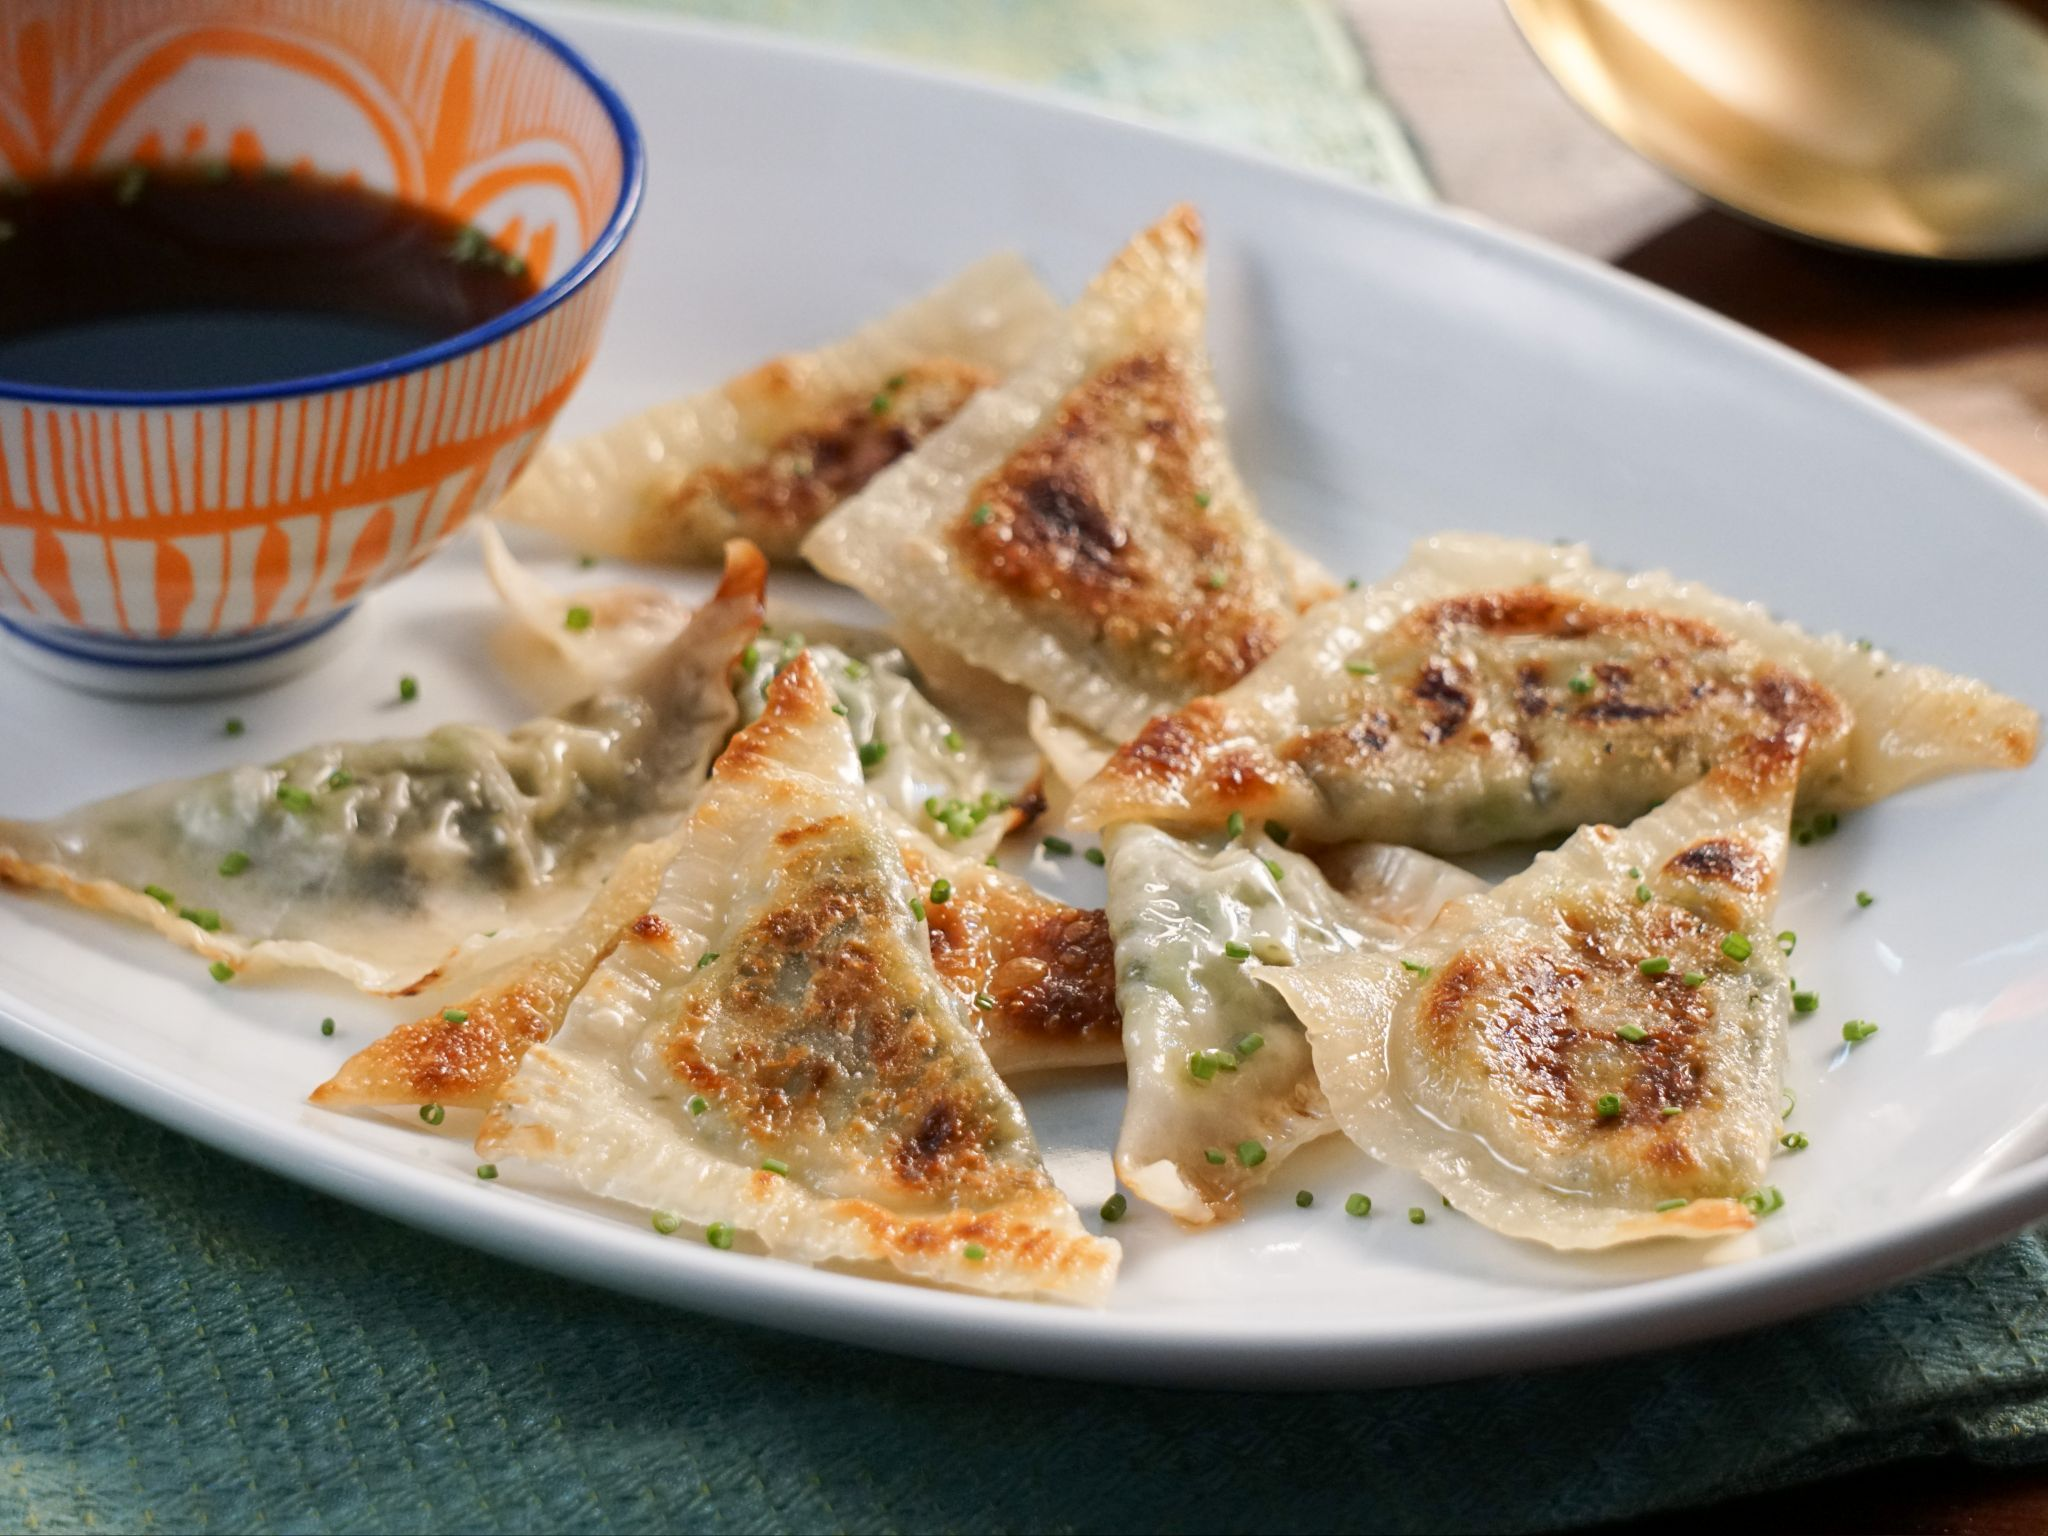 Vegetable potstickers recipe valerie bertinelli napa cabbage vegetable potstickers recipe valerie bertinelli napa cabbage and cilantro forumfinder Choice Image